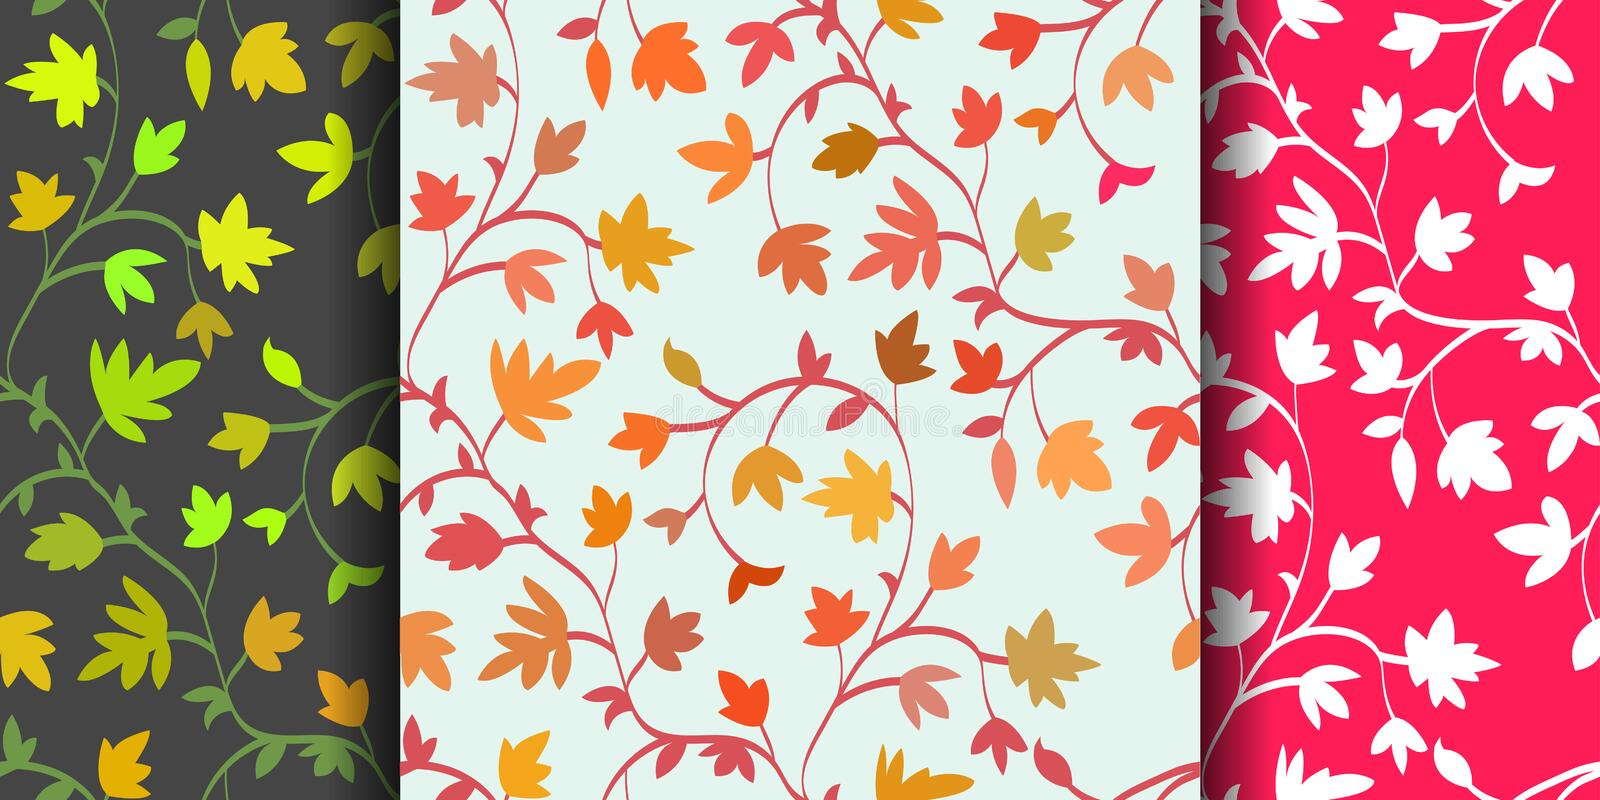 Set: 3 Seamless floral pattern with branches and leaves, abstract texture, endless background. Vector illustration stock illustration